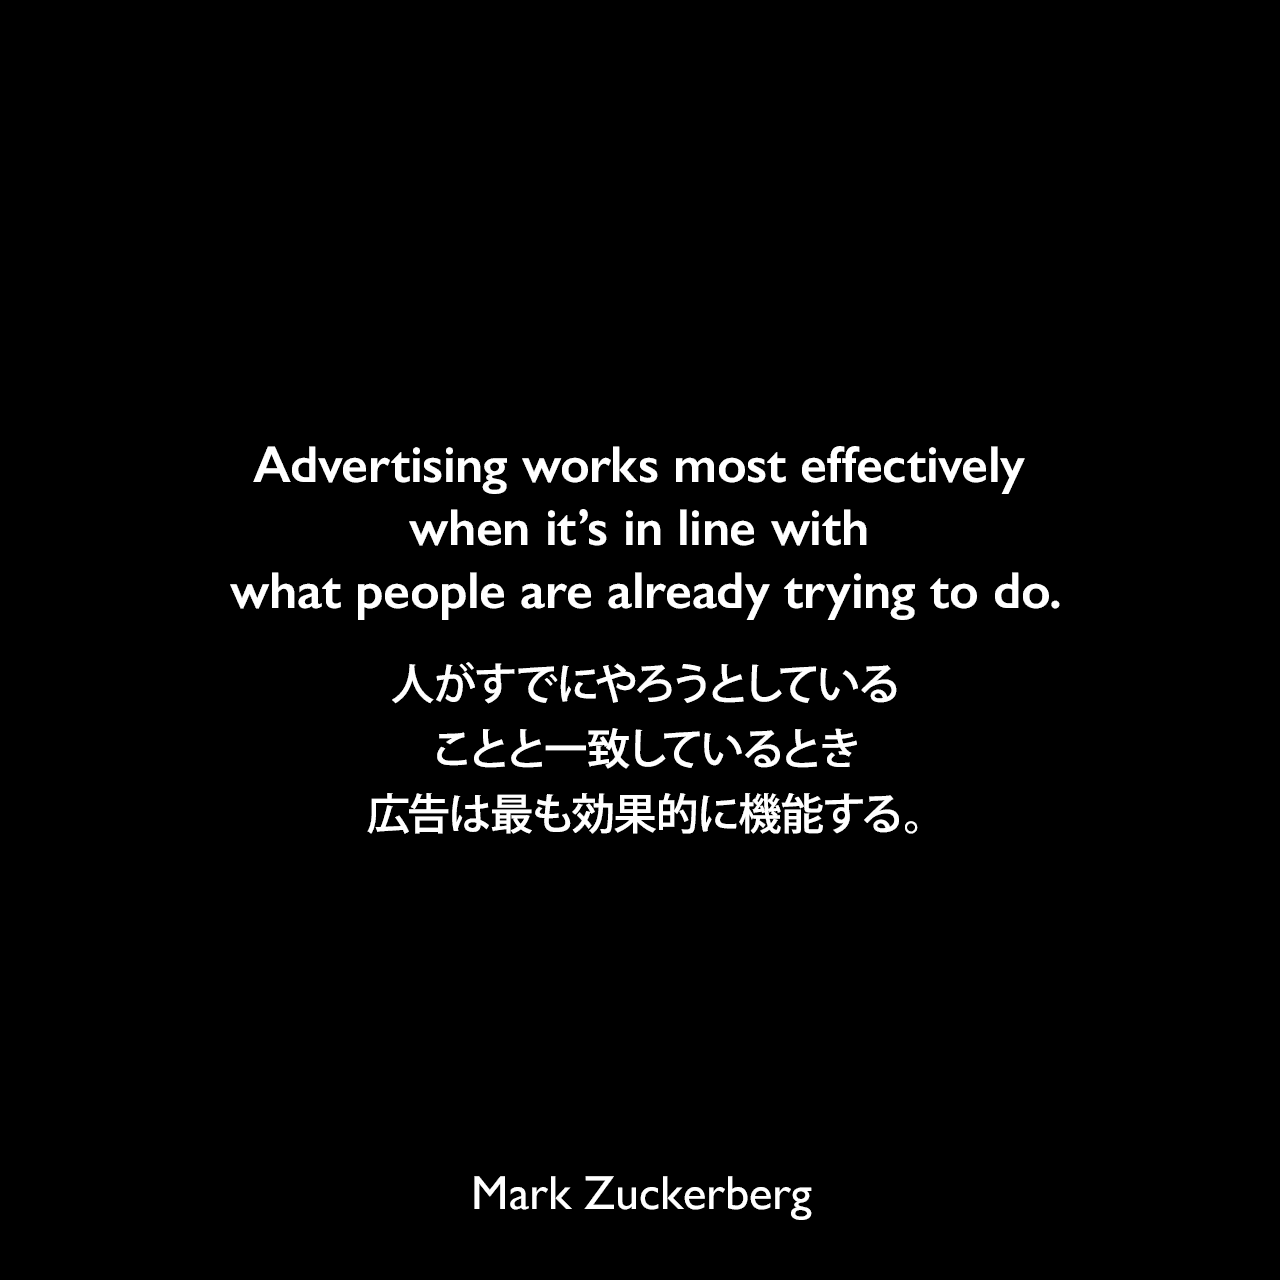 Advertising works most effectively when it's in line with what people are already trying to do.人がすでにやろうとしていることと一致しているとき、広告は最も効果的に機能する。Mark Zuckerberg